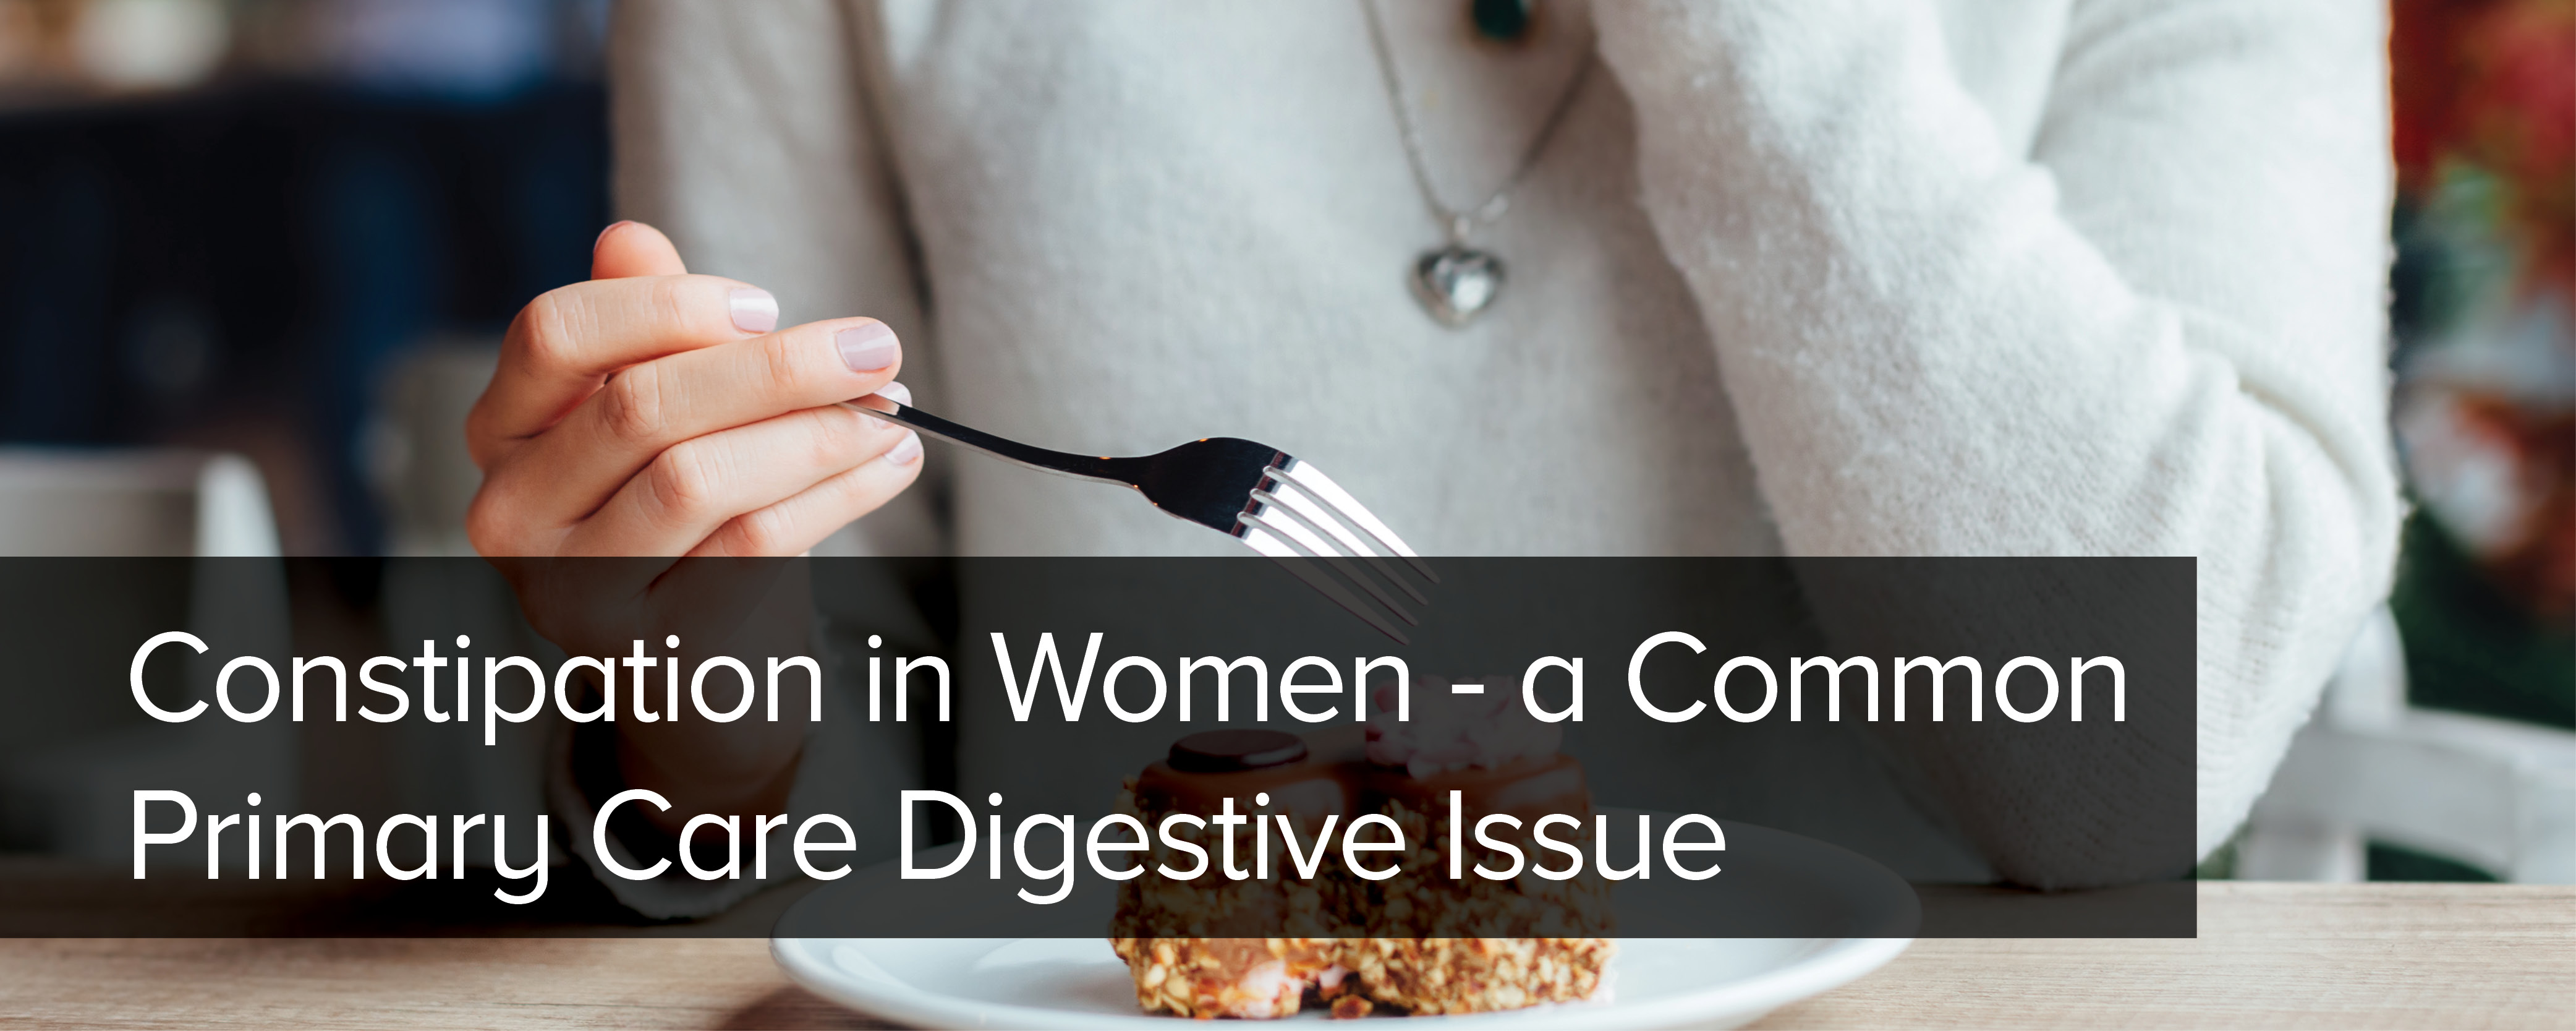 Constipation in Women - A Common Primary Care Digestive Issue